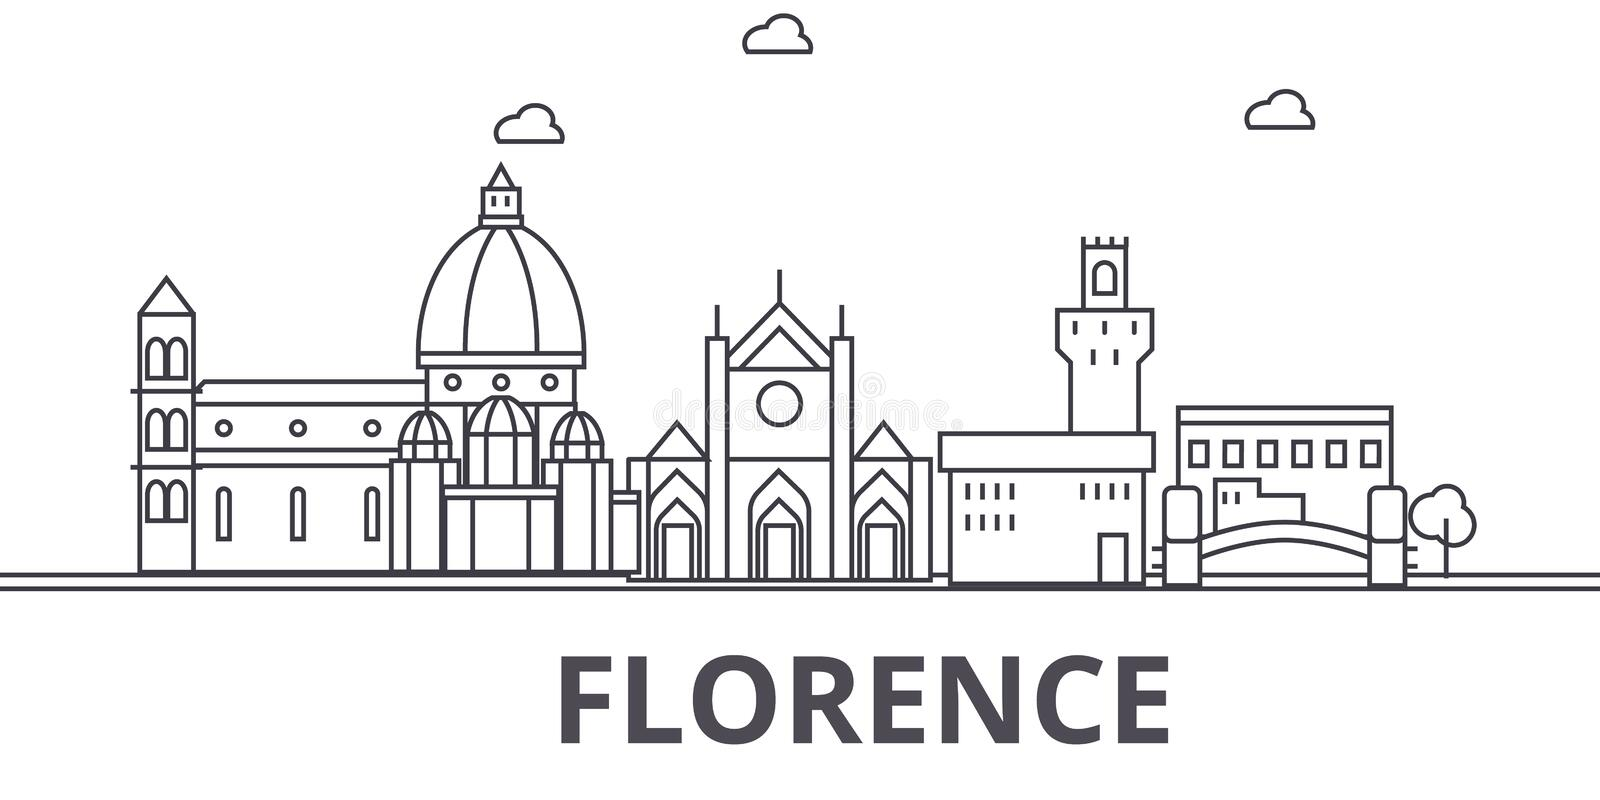 Florence architecture line skyline illustration. Linear vector cityscape with famous landmarks, city sights, design. Icons. Editable strokes royalty free illustration